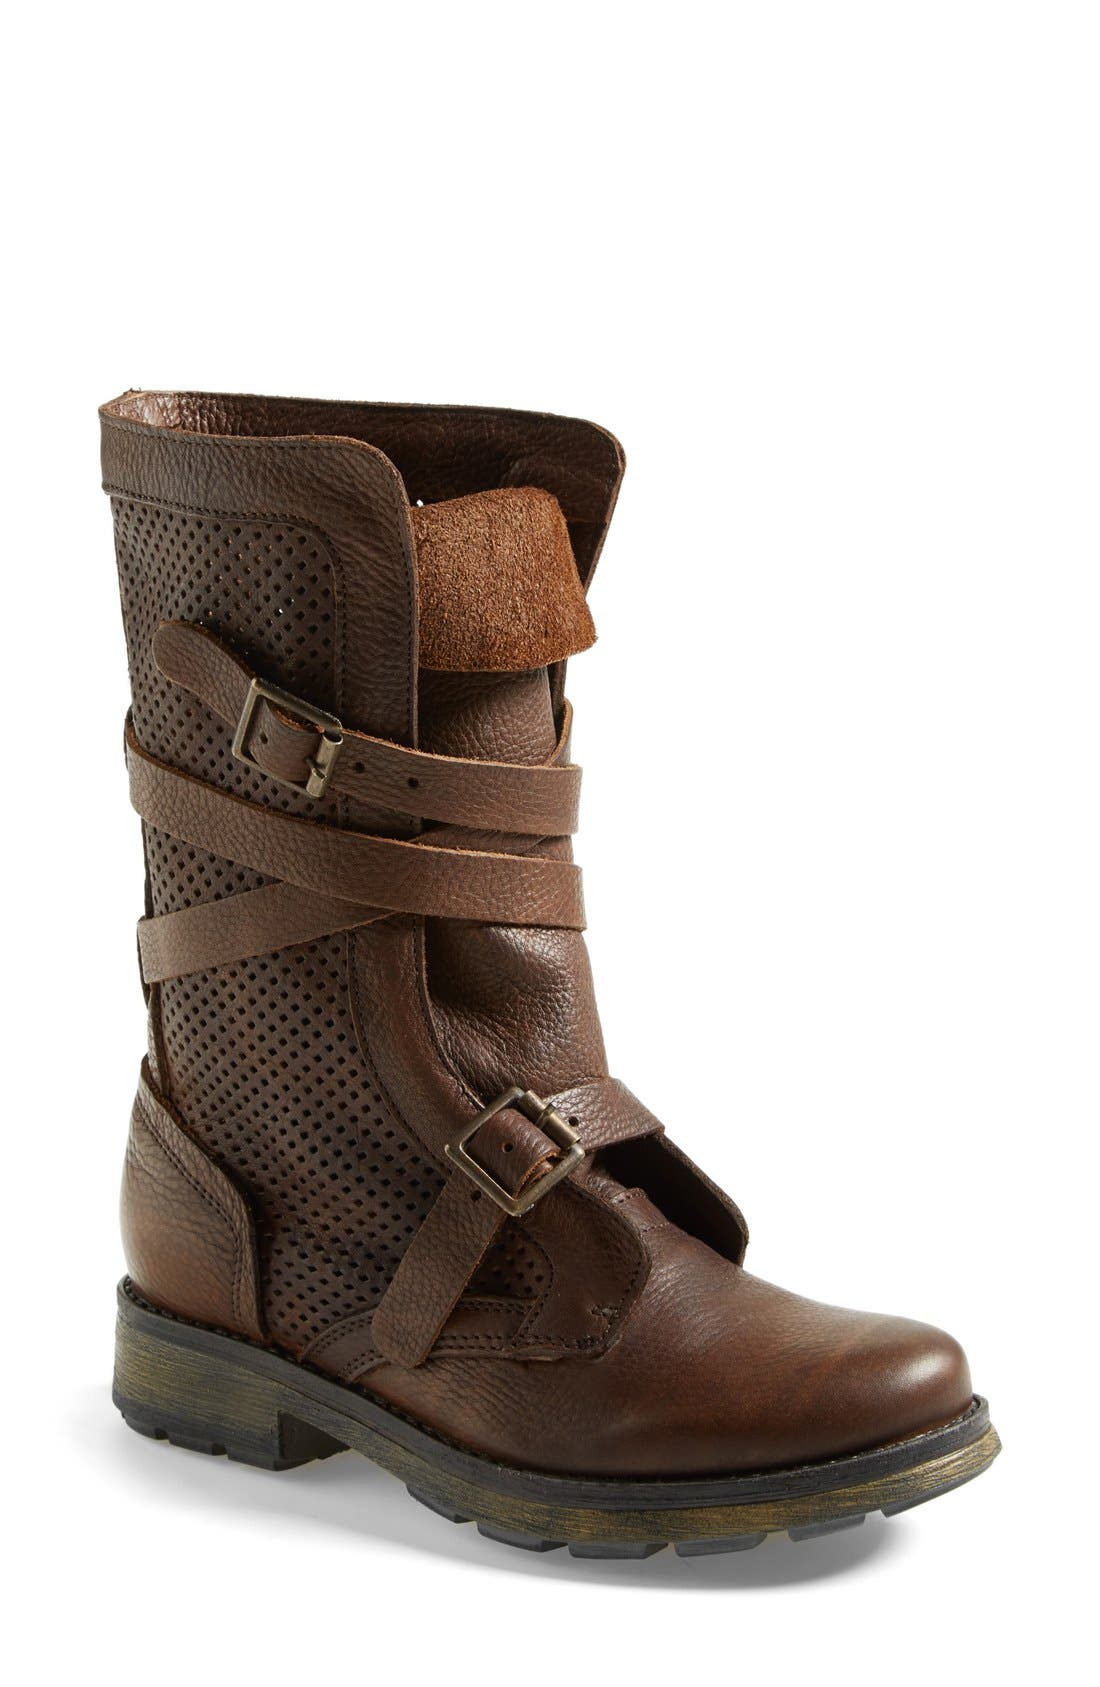 Main Image - Steve Madden 'Bosston' Leather Boot (Women)